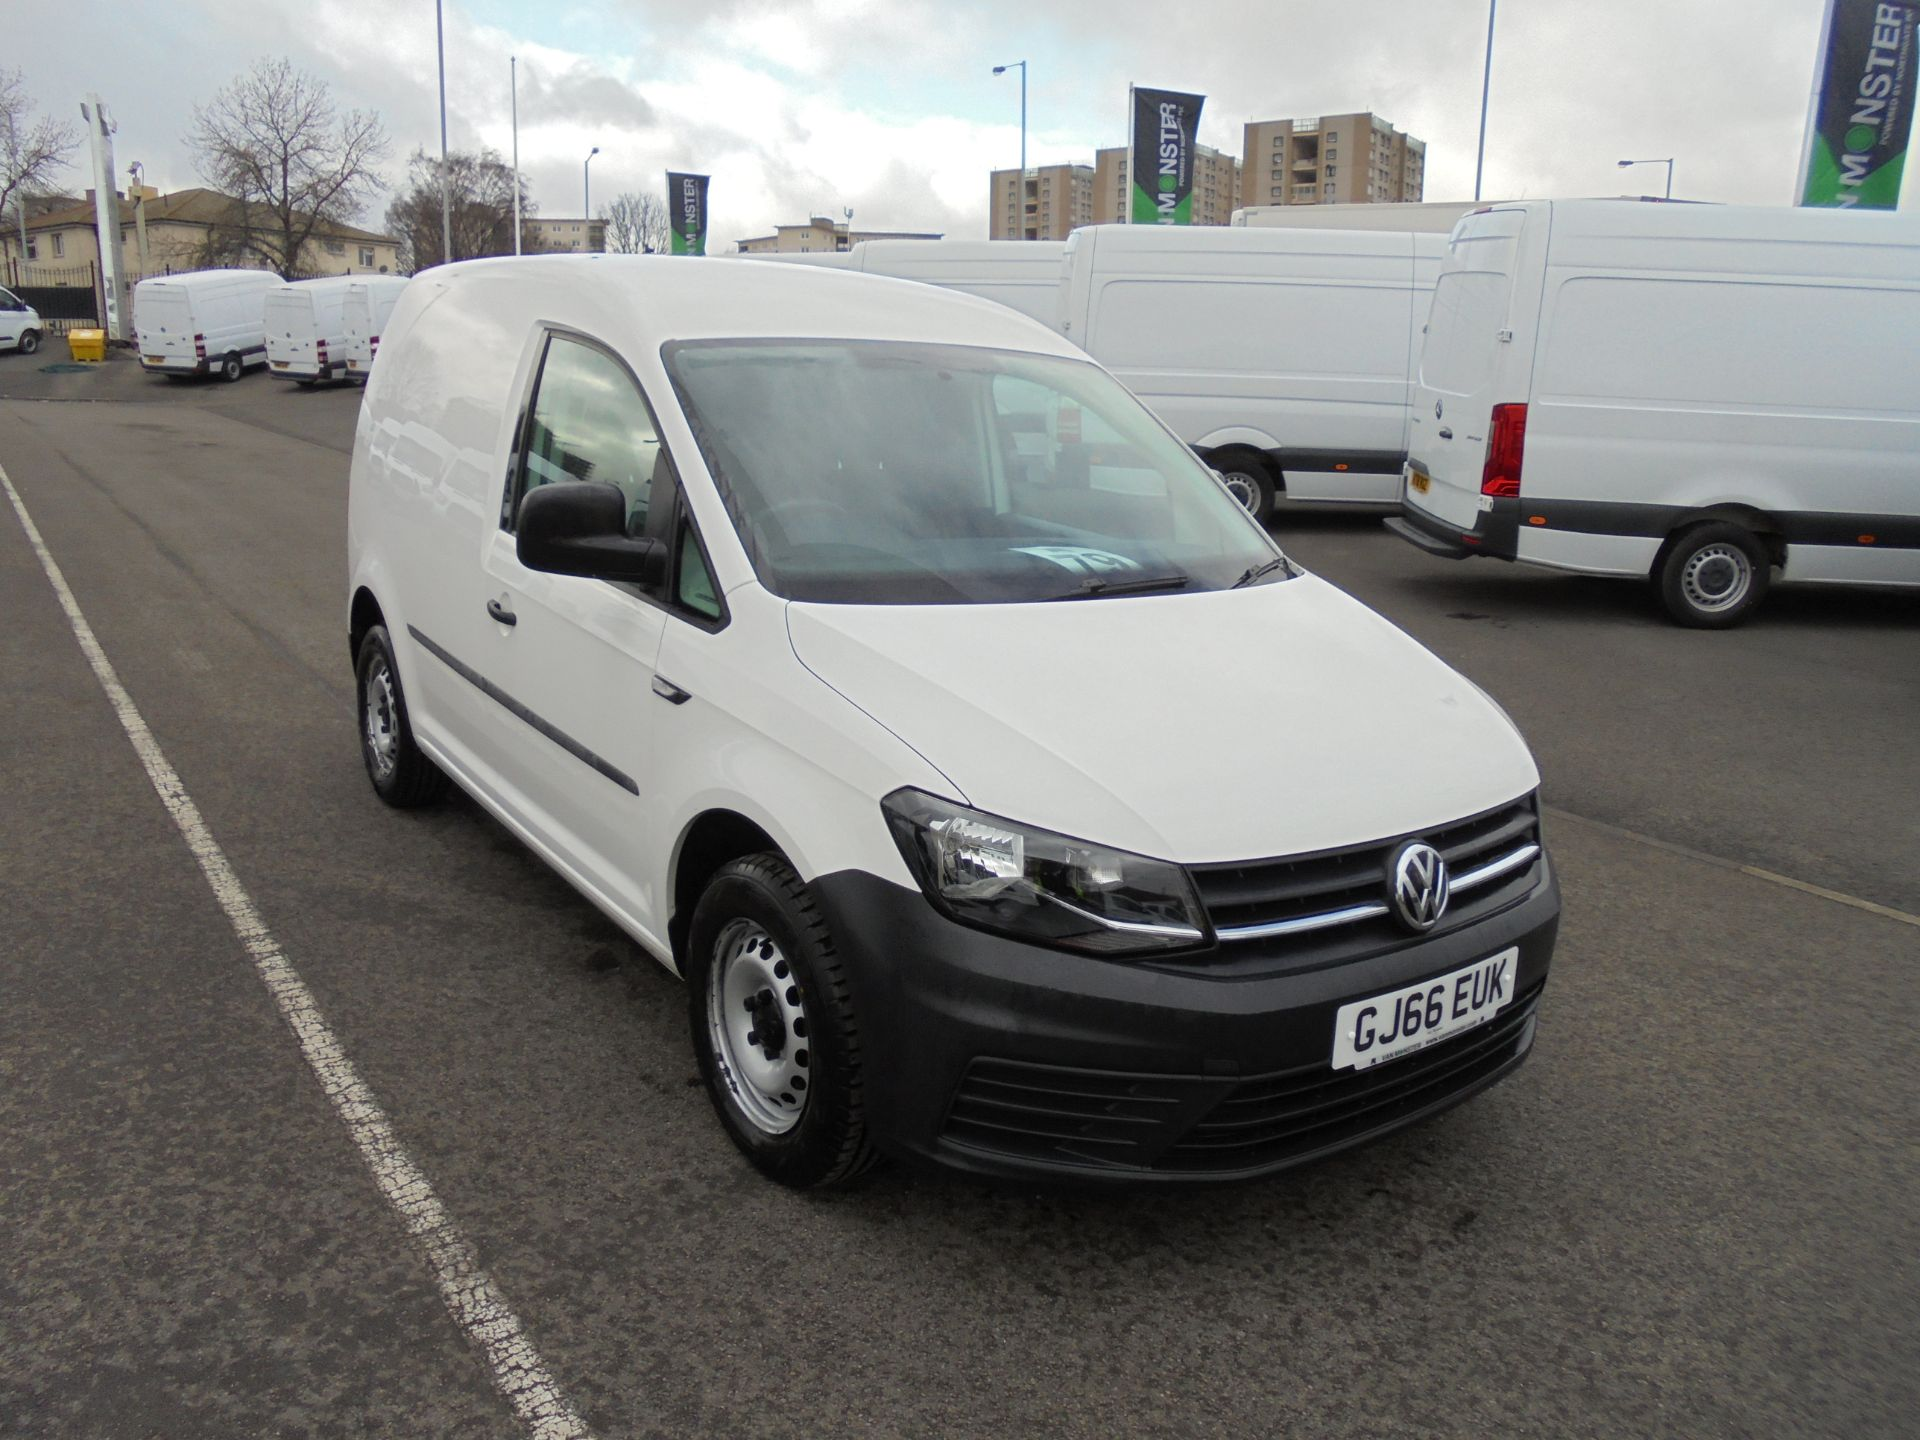 2016 Volkswagen Caddy 2.0 Tdi Bluemotion Tech 102Ps Startline Van (GJ66EUK)